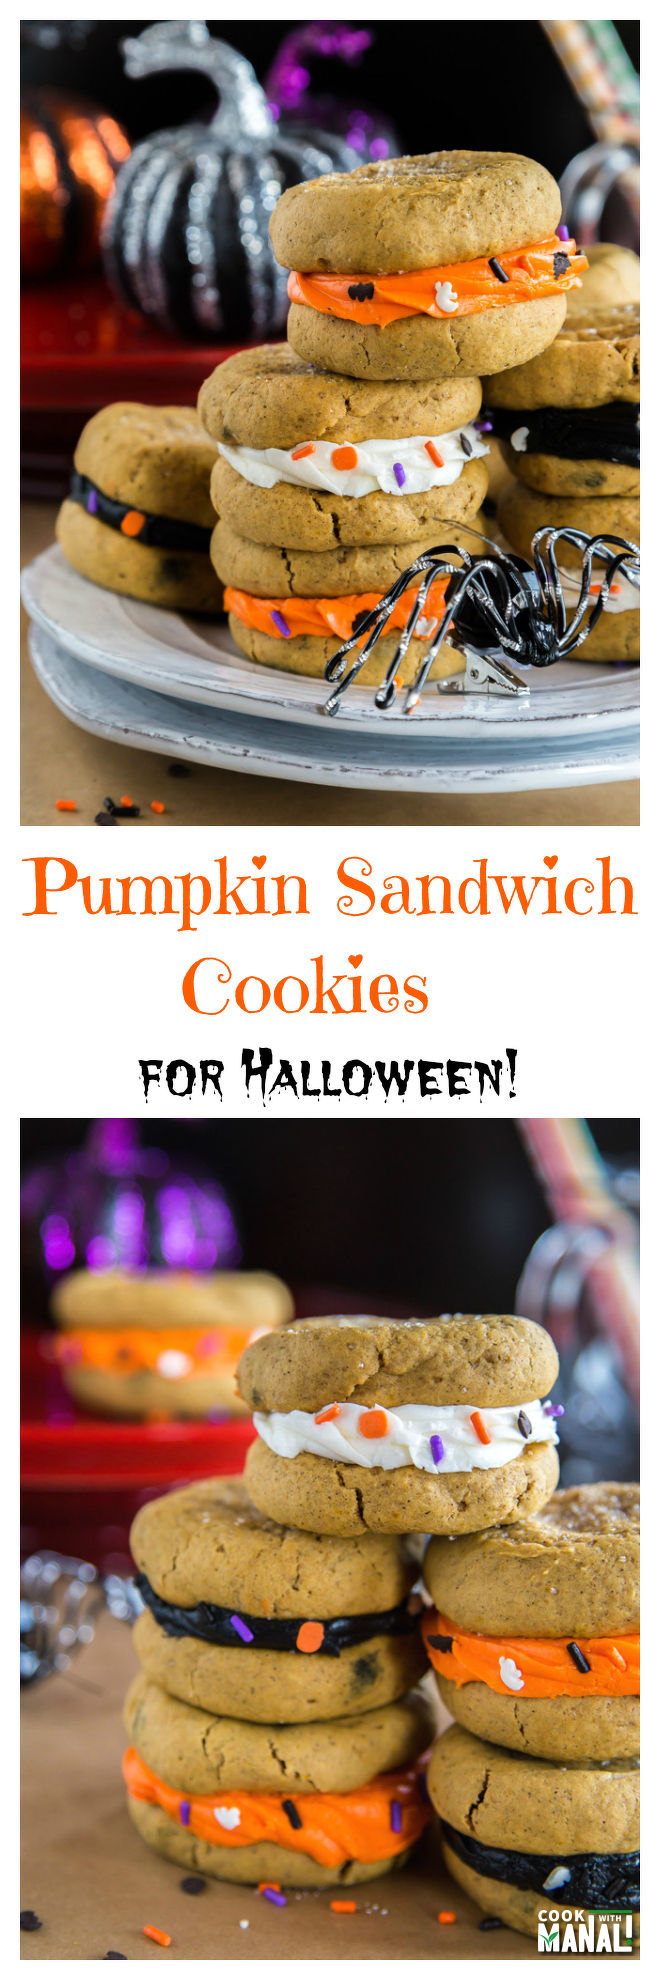 Pumpkin Sandwich Cookies for Halloween Collage